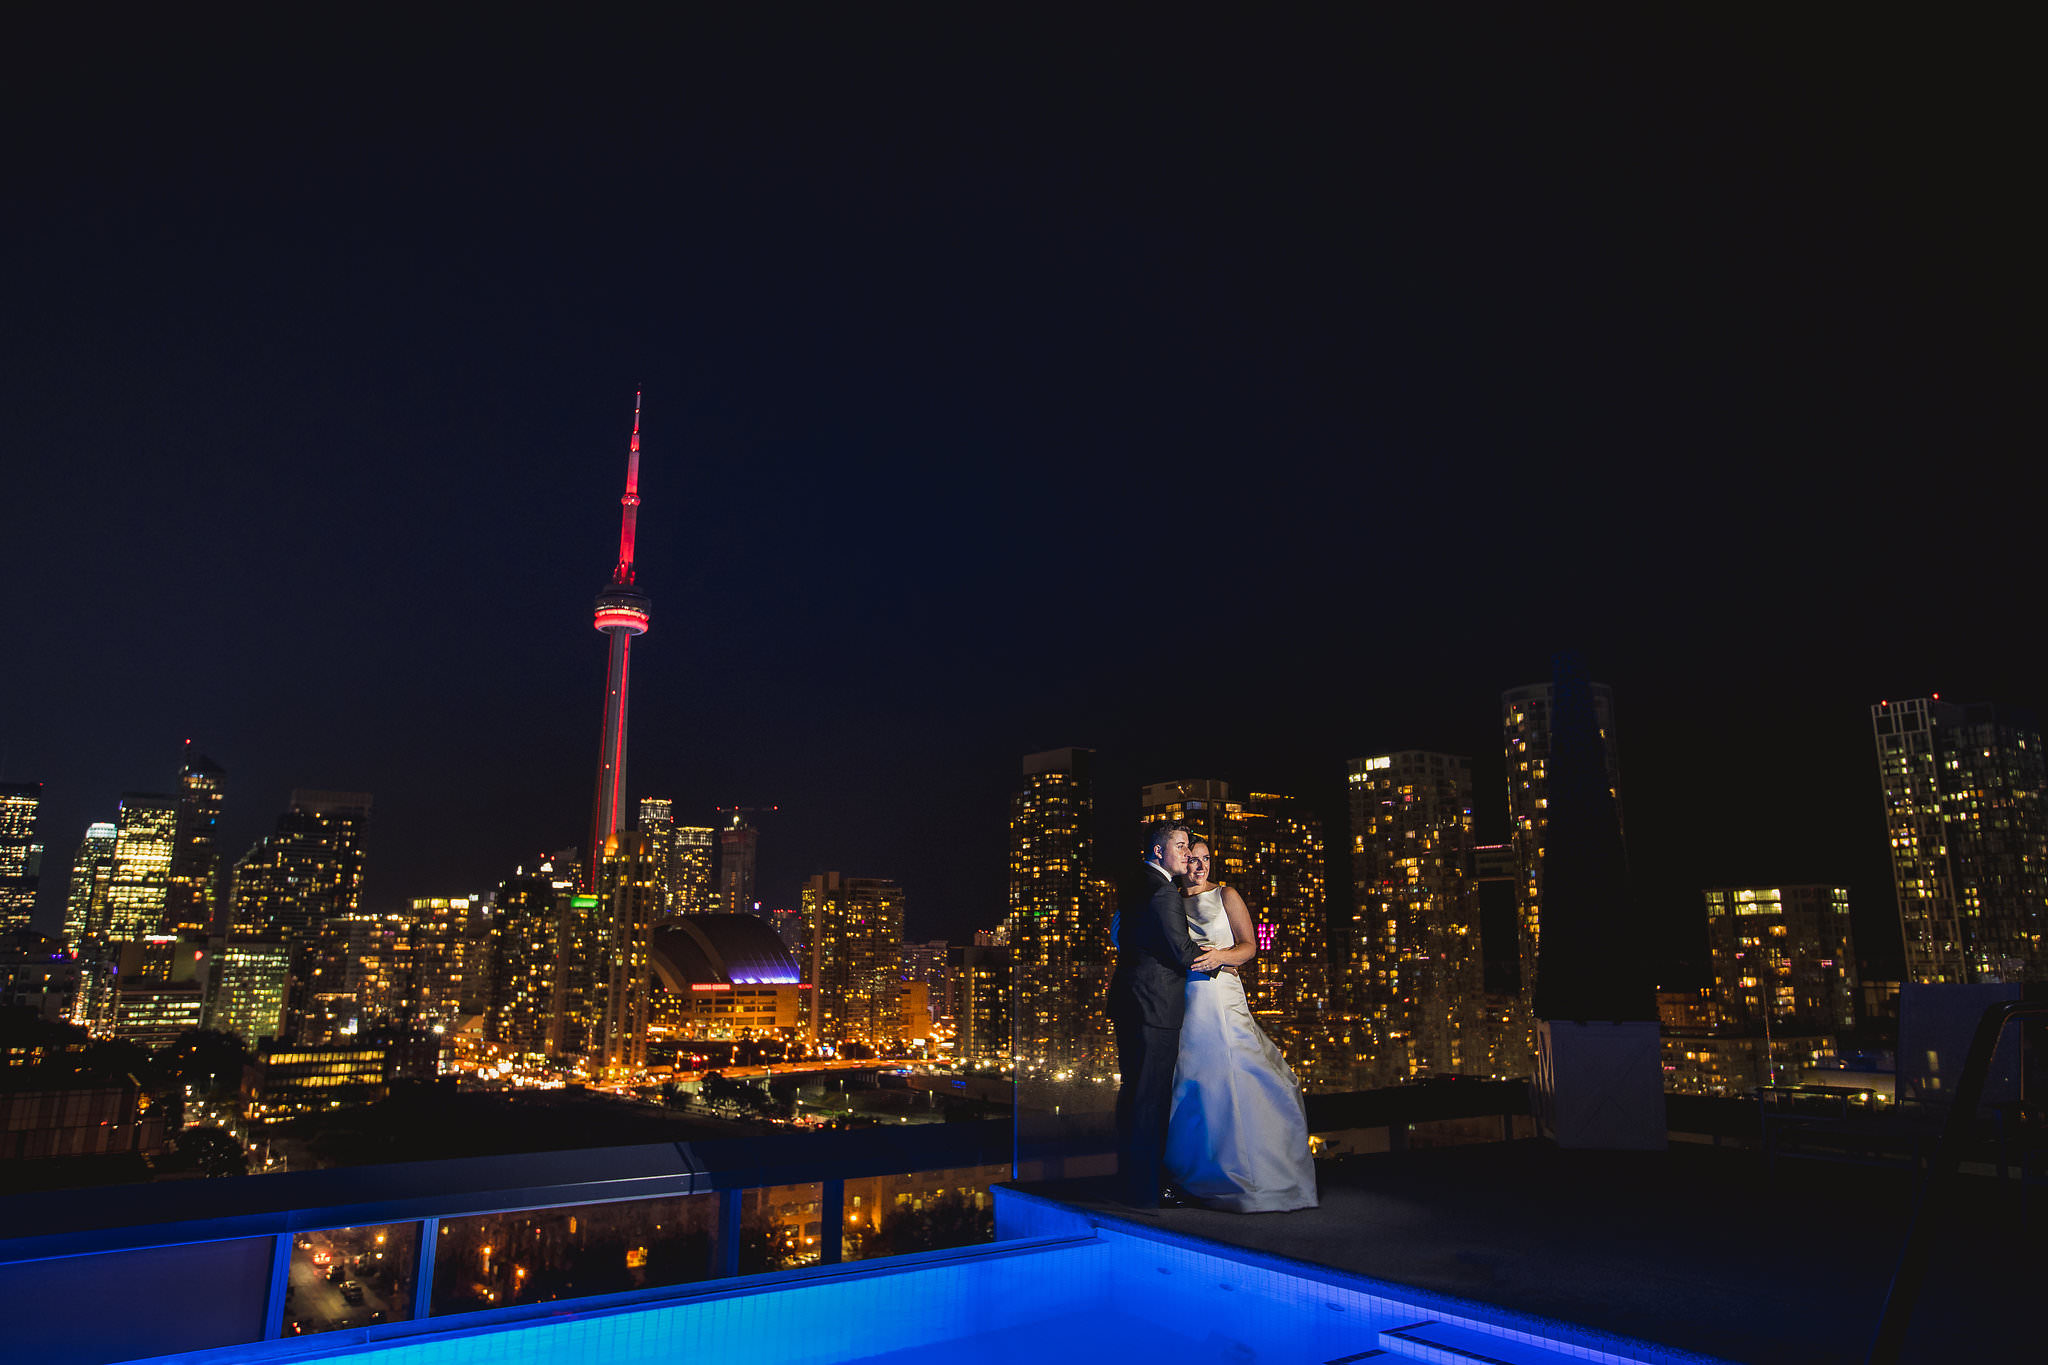 thompson hotel rooftop wedding photos